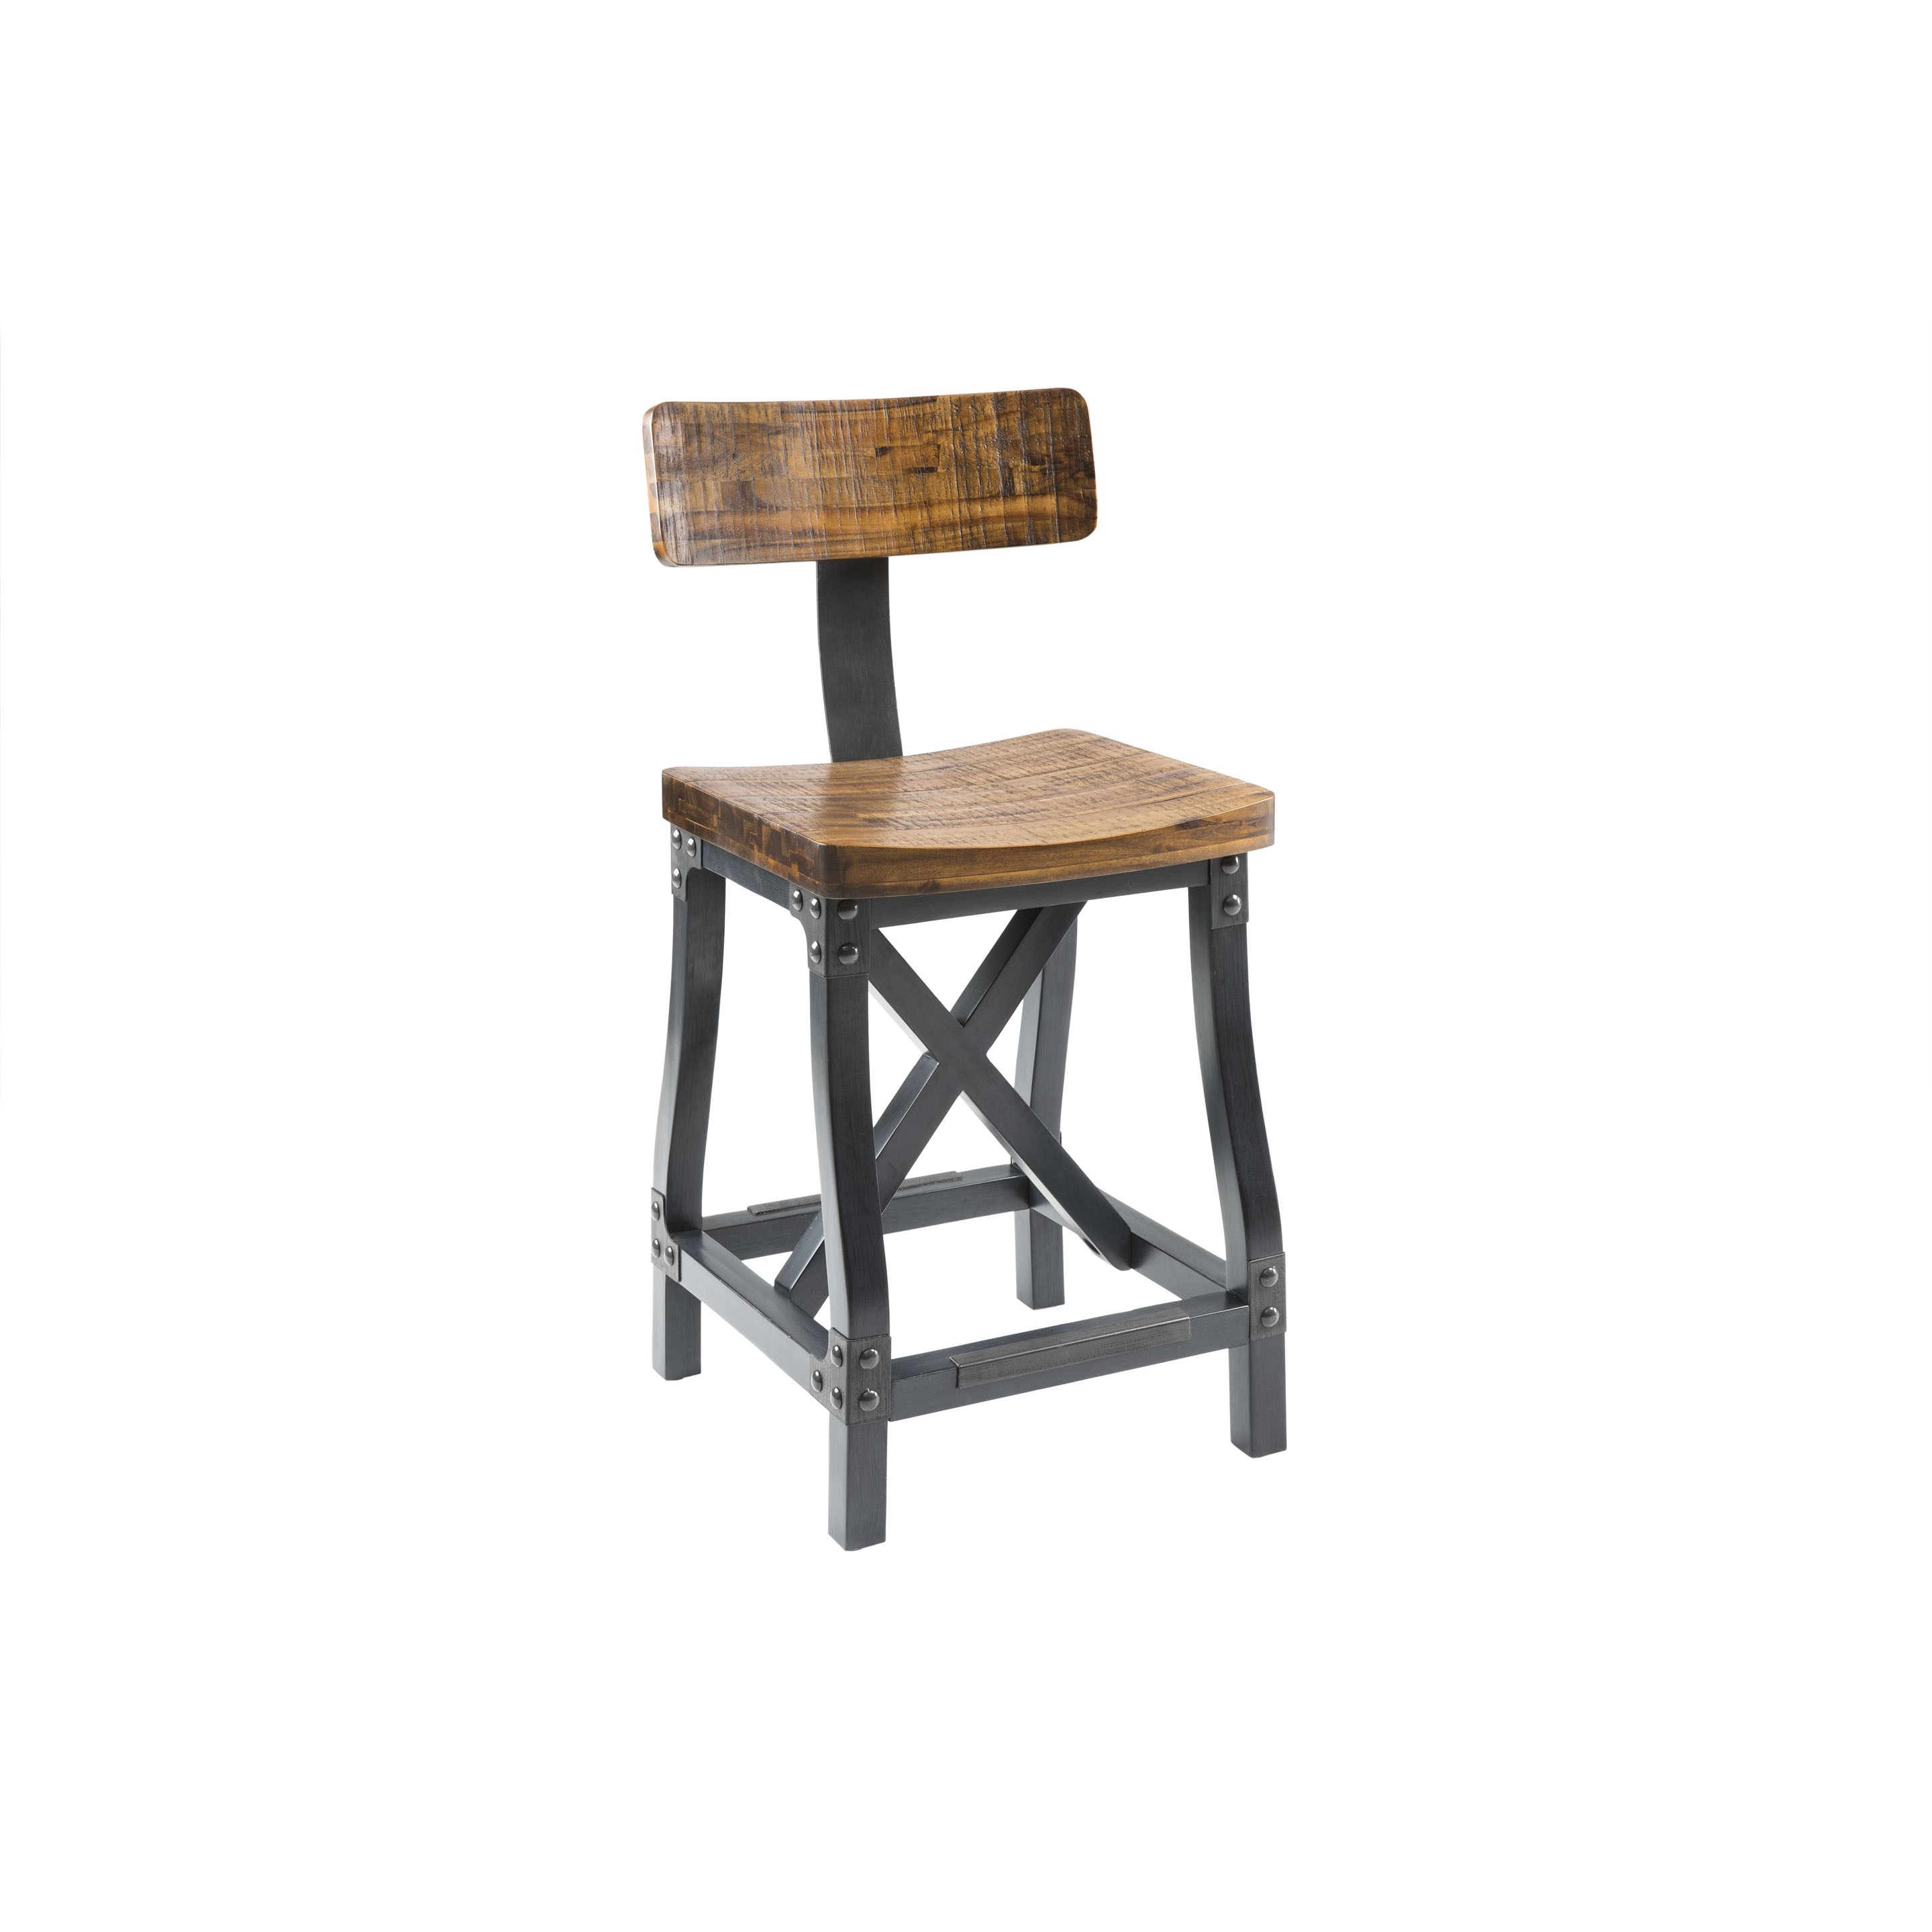 Cheyenne Counter Height Bar Stool w/Back | Rustic Counter Stools | Furniture | Abode u0026 Company  sc 1 st  Abode u0026 Company & Cheyenne Counter Height Bar Stool w/Back | Rustic Counter Stools ... islam-shia.org